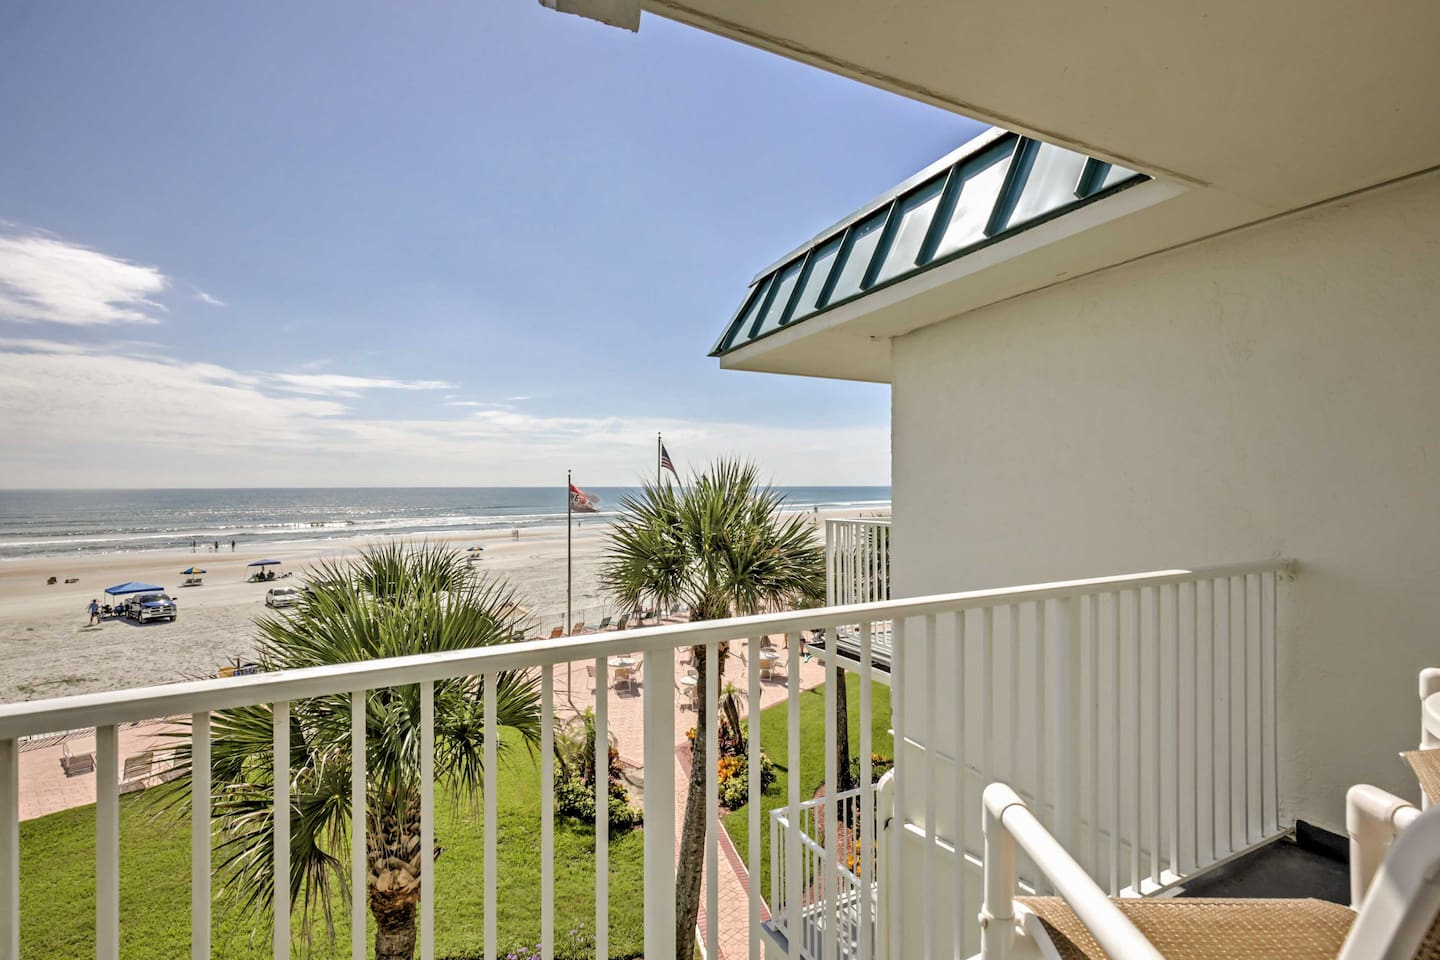 Pack your bags and head South to stay in this vacation rental studio in Daytona Beach.